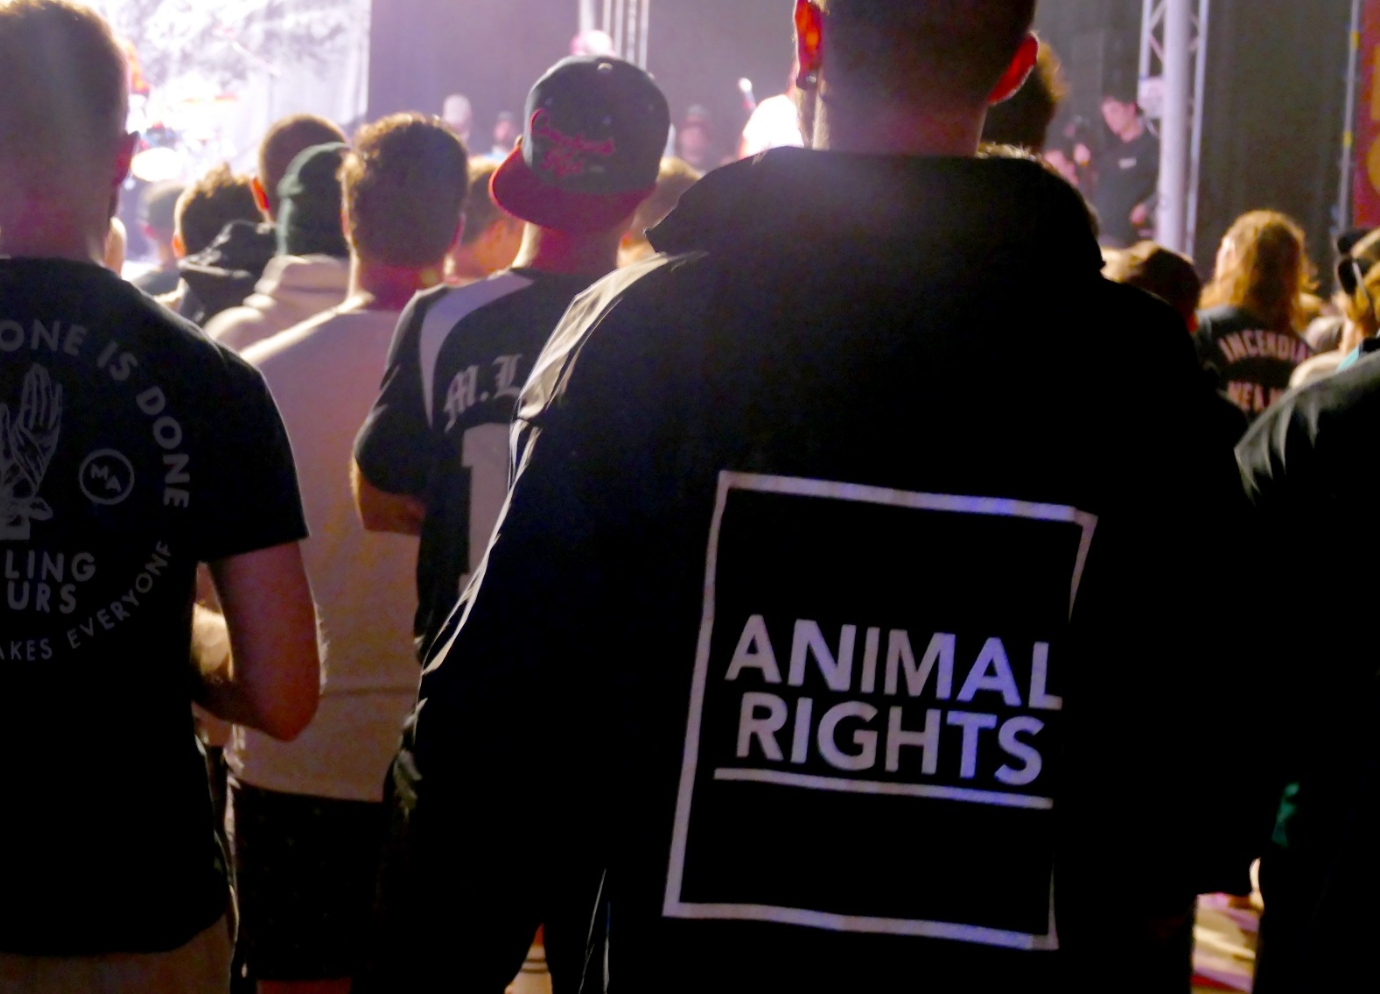 An animal rights advocate at Ieperfest 2018